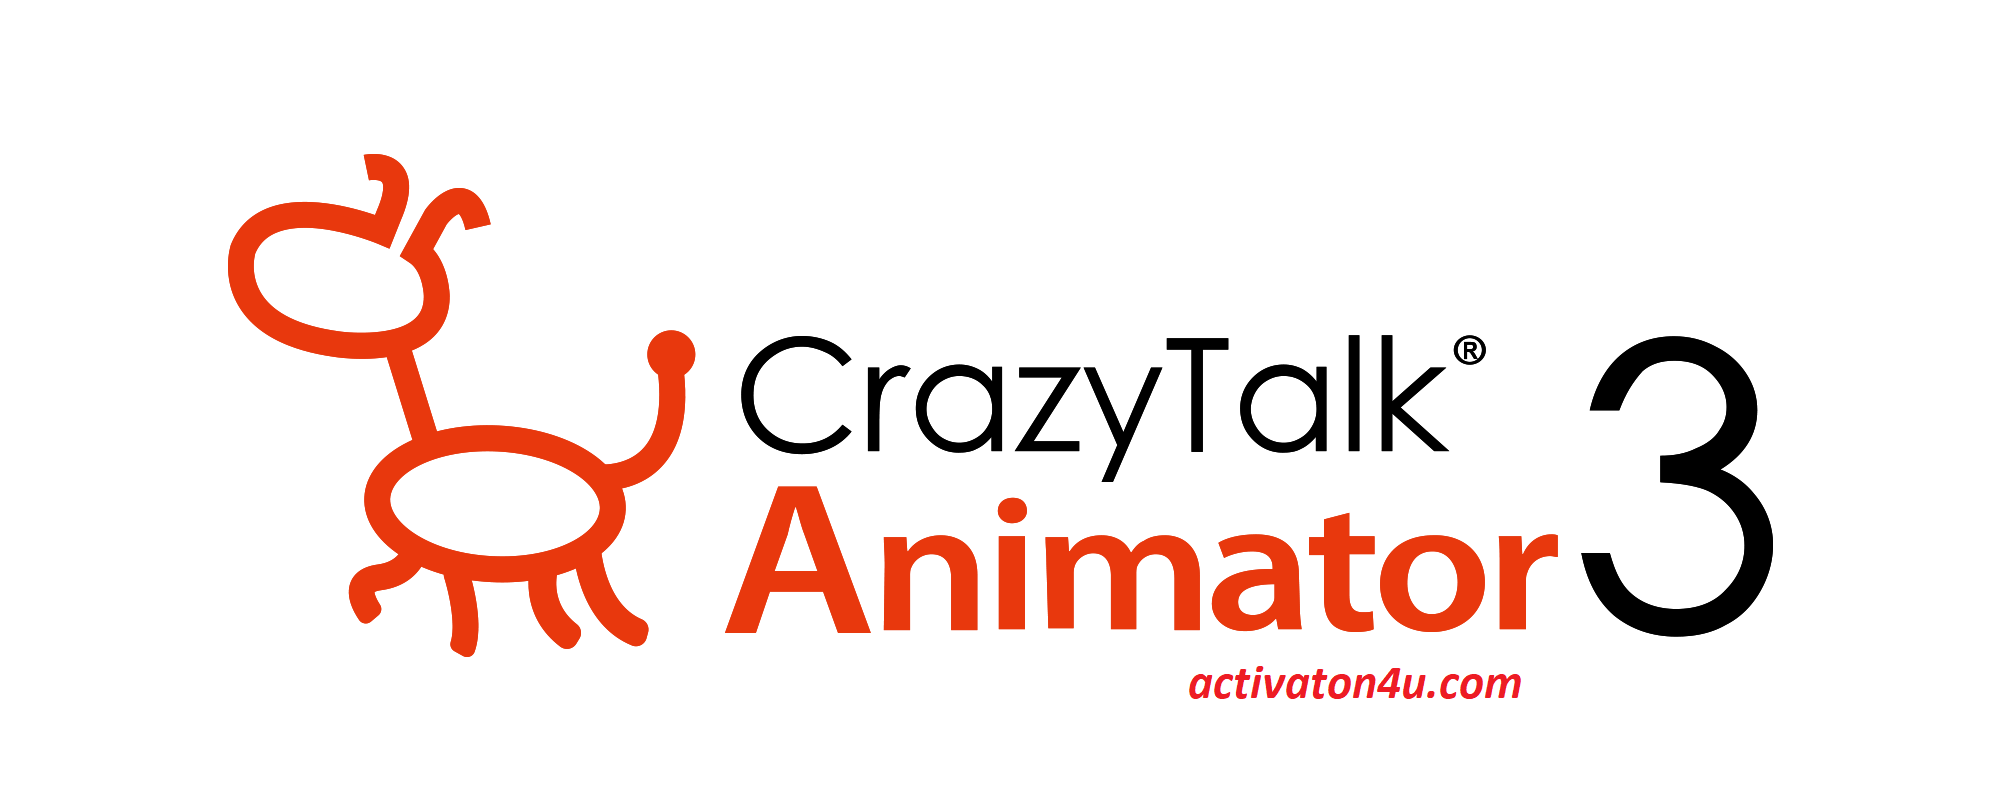 CrazyTalk Animator 3.31.3514.2 Crack Full Version Download